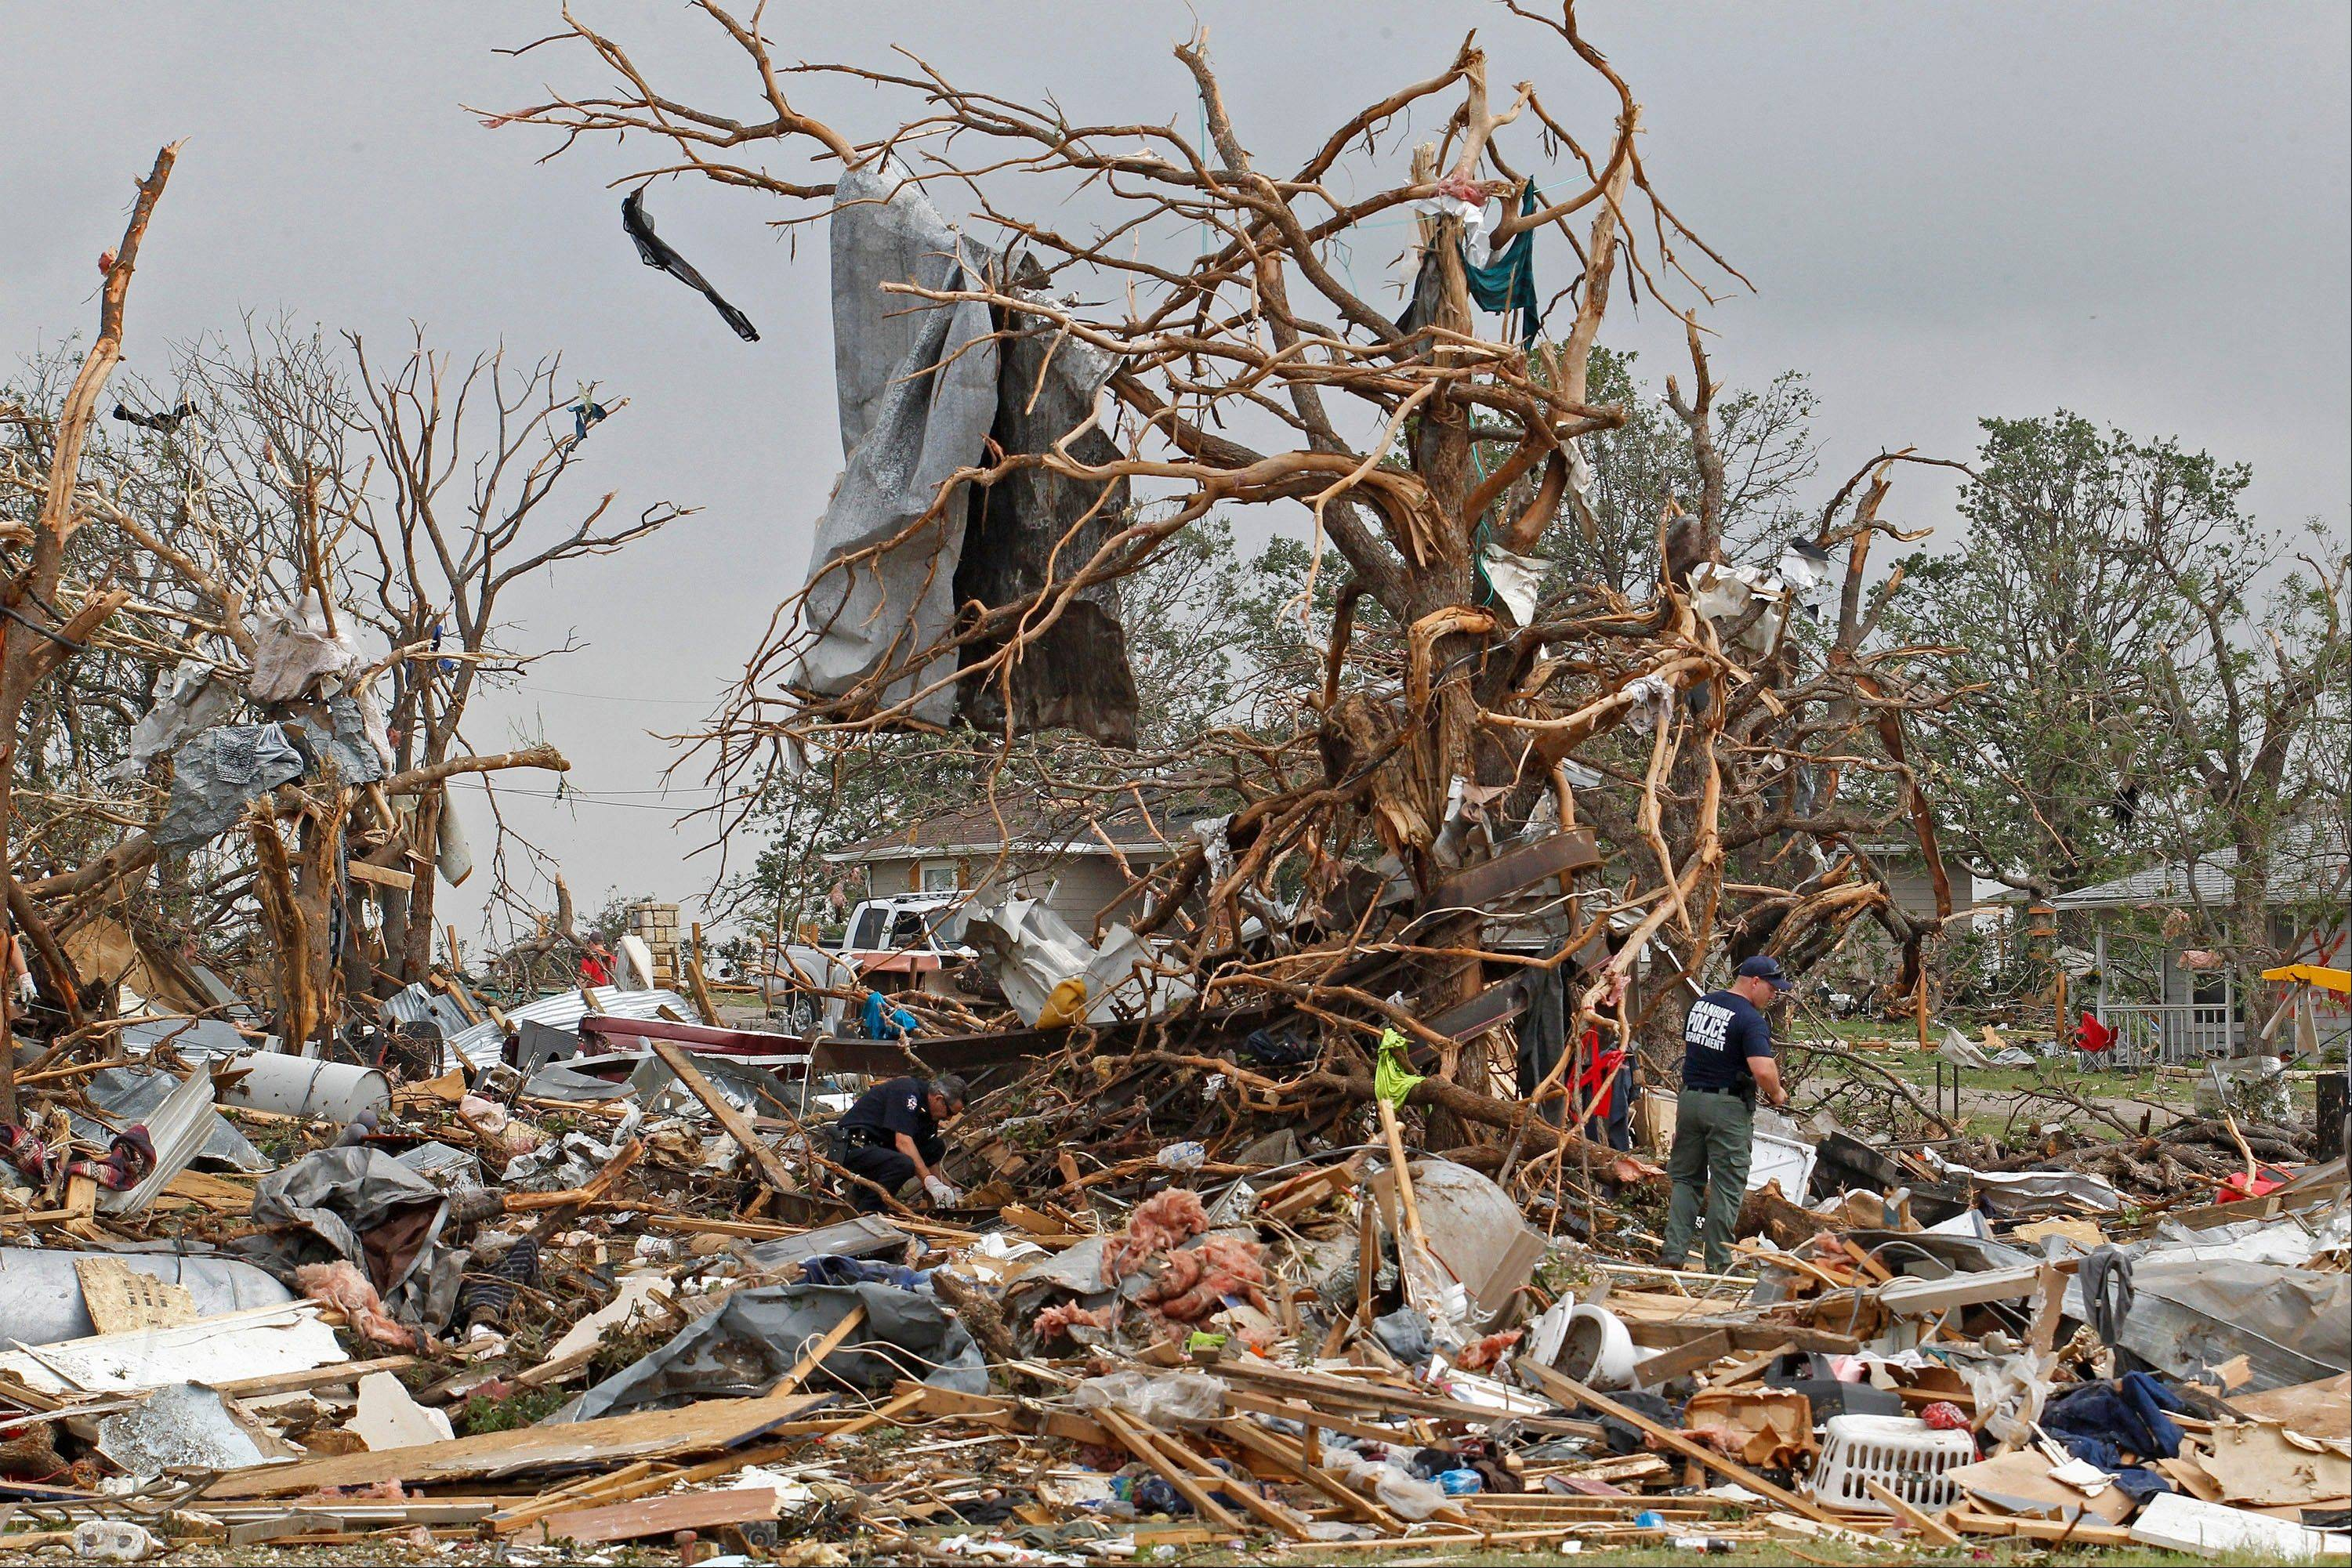 Crushed autos sit amid the rubble of destroyed homes as emergency personnel continue search efforts to locate unaccounted for people in the Rancho Brazos neighborhood in Granbury, Texas, Thursday, May 16, 2013. A rash of tornadoes slammed into several small communities in North Texas overnight, leaving at least six people dead, dozens more injured and hundreds homeless.